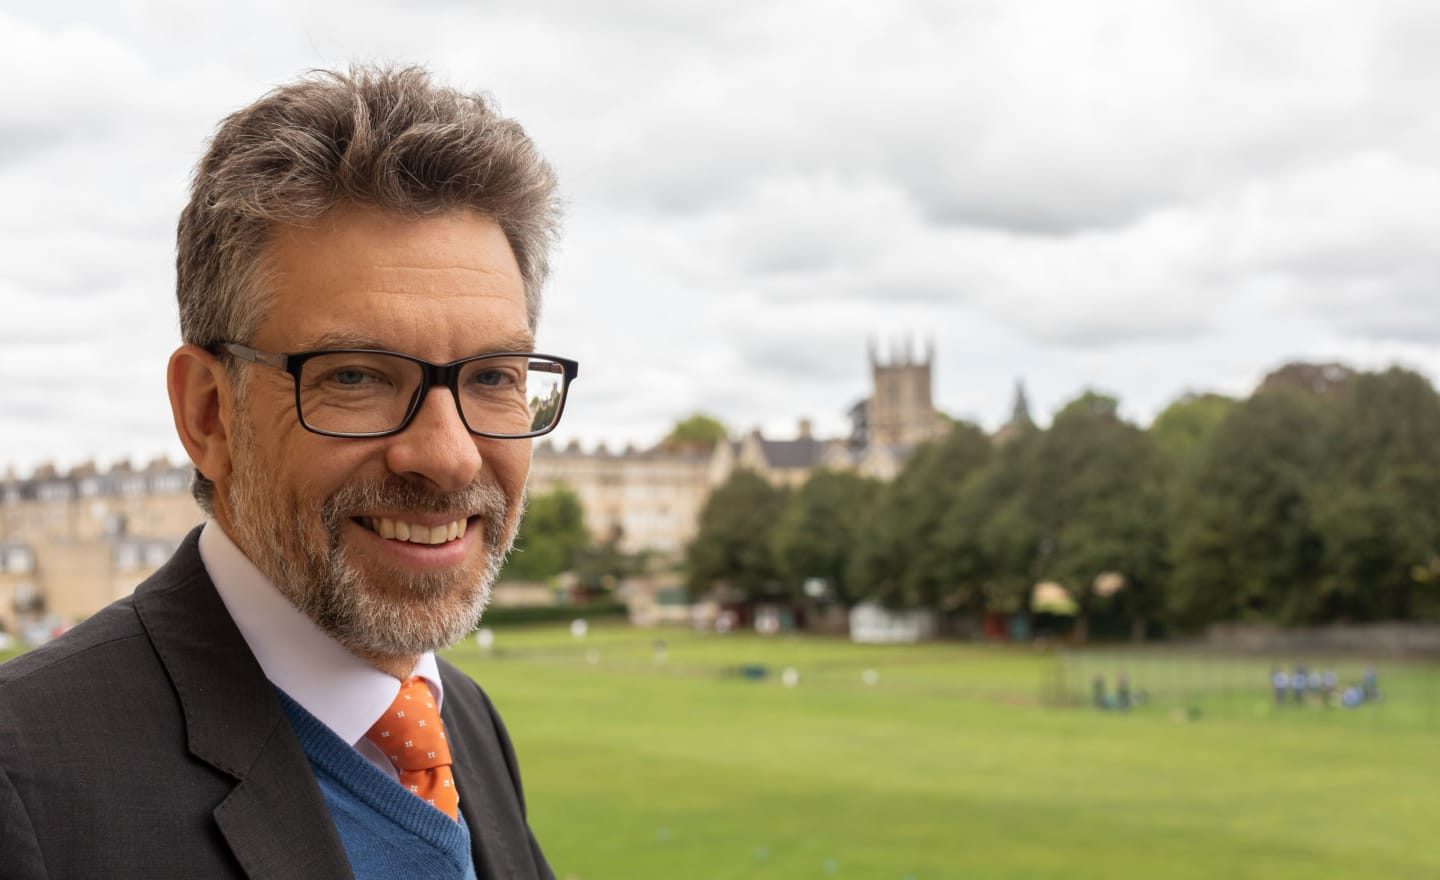 Christopher Potter - Represents Bath Rugby's owner on the board of trustees